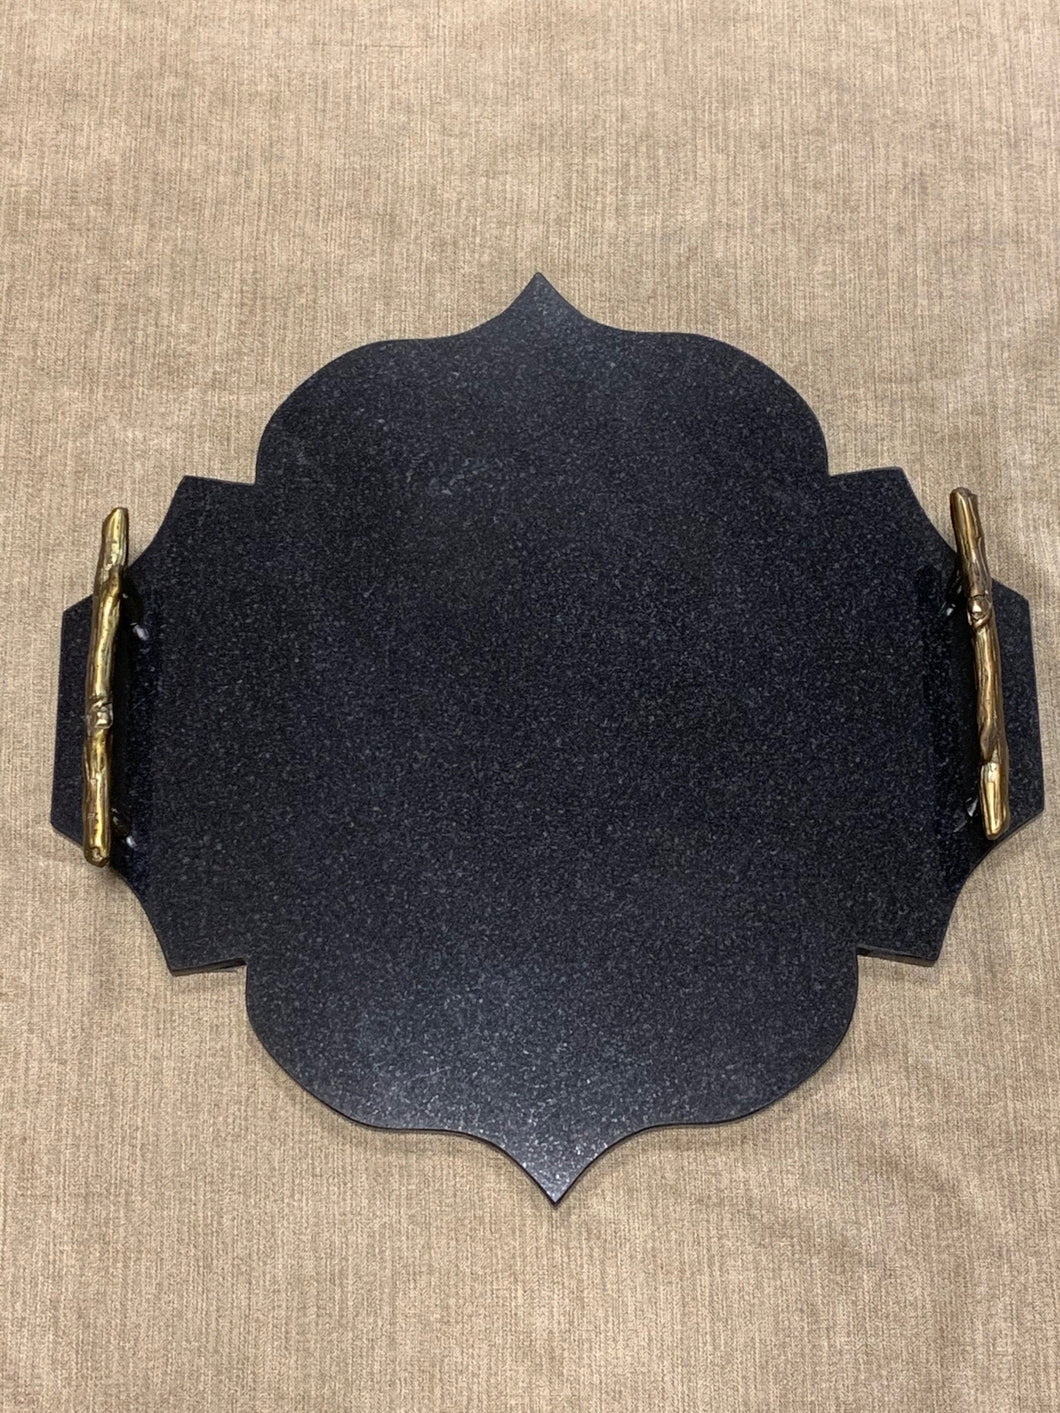 Black Marble Scalloped Tray